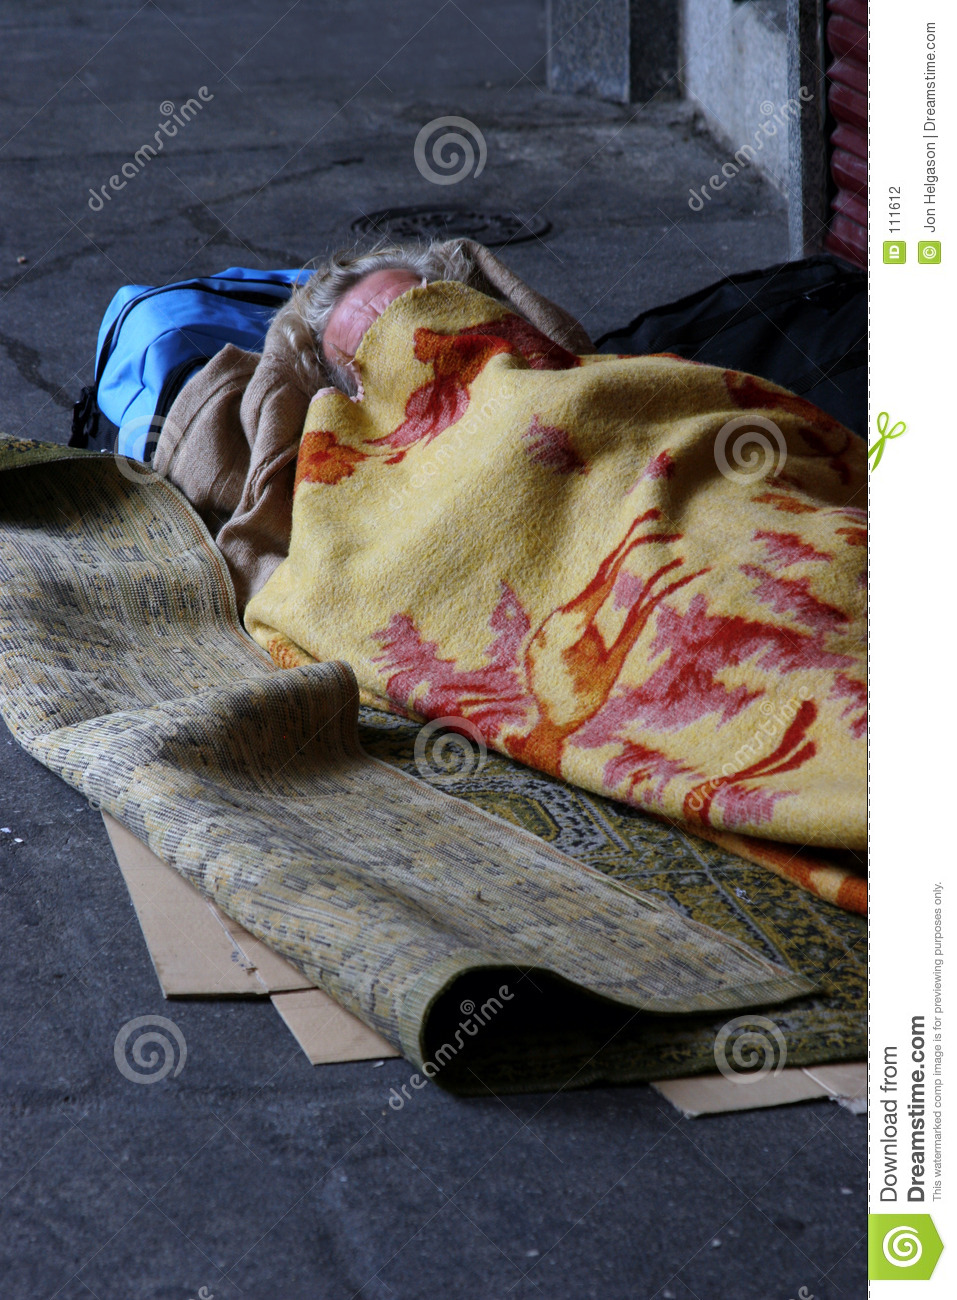 Download Faceless and homeless stock photo. Image of jobless, pennyless - 111612